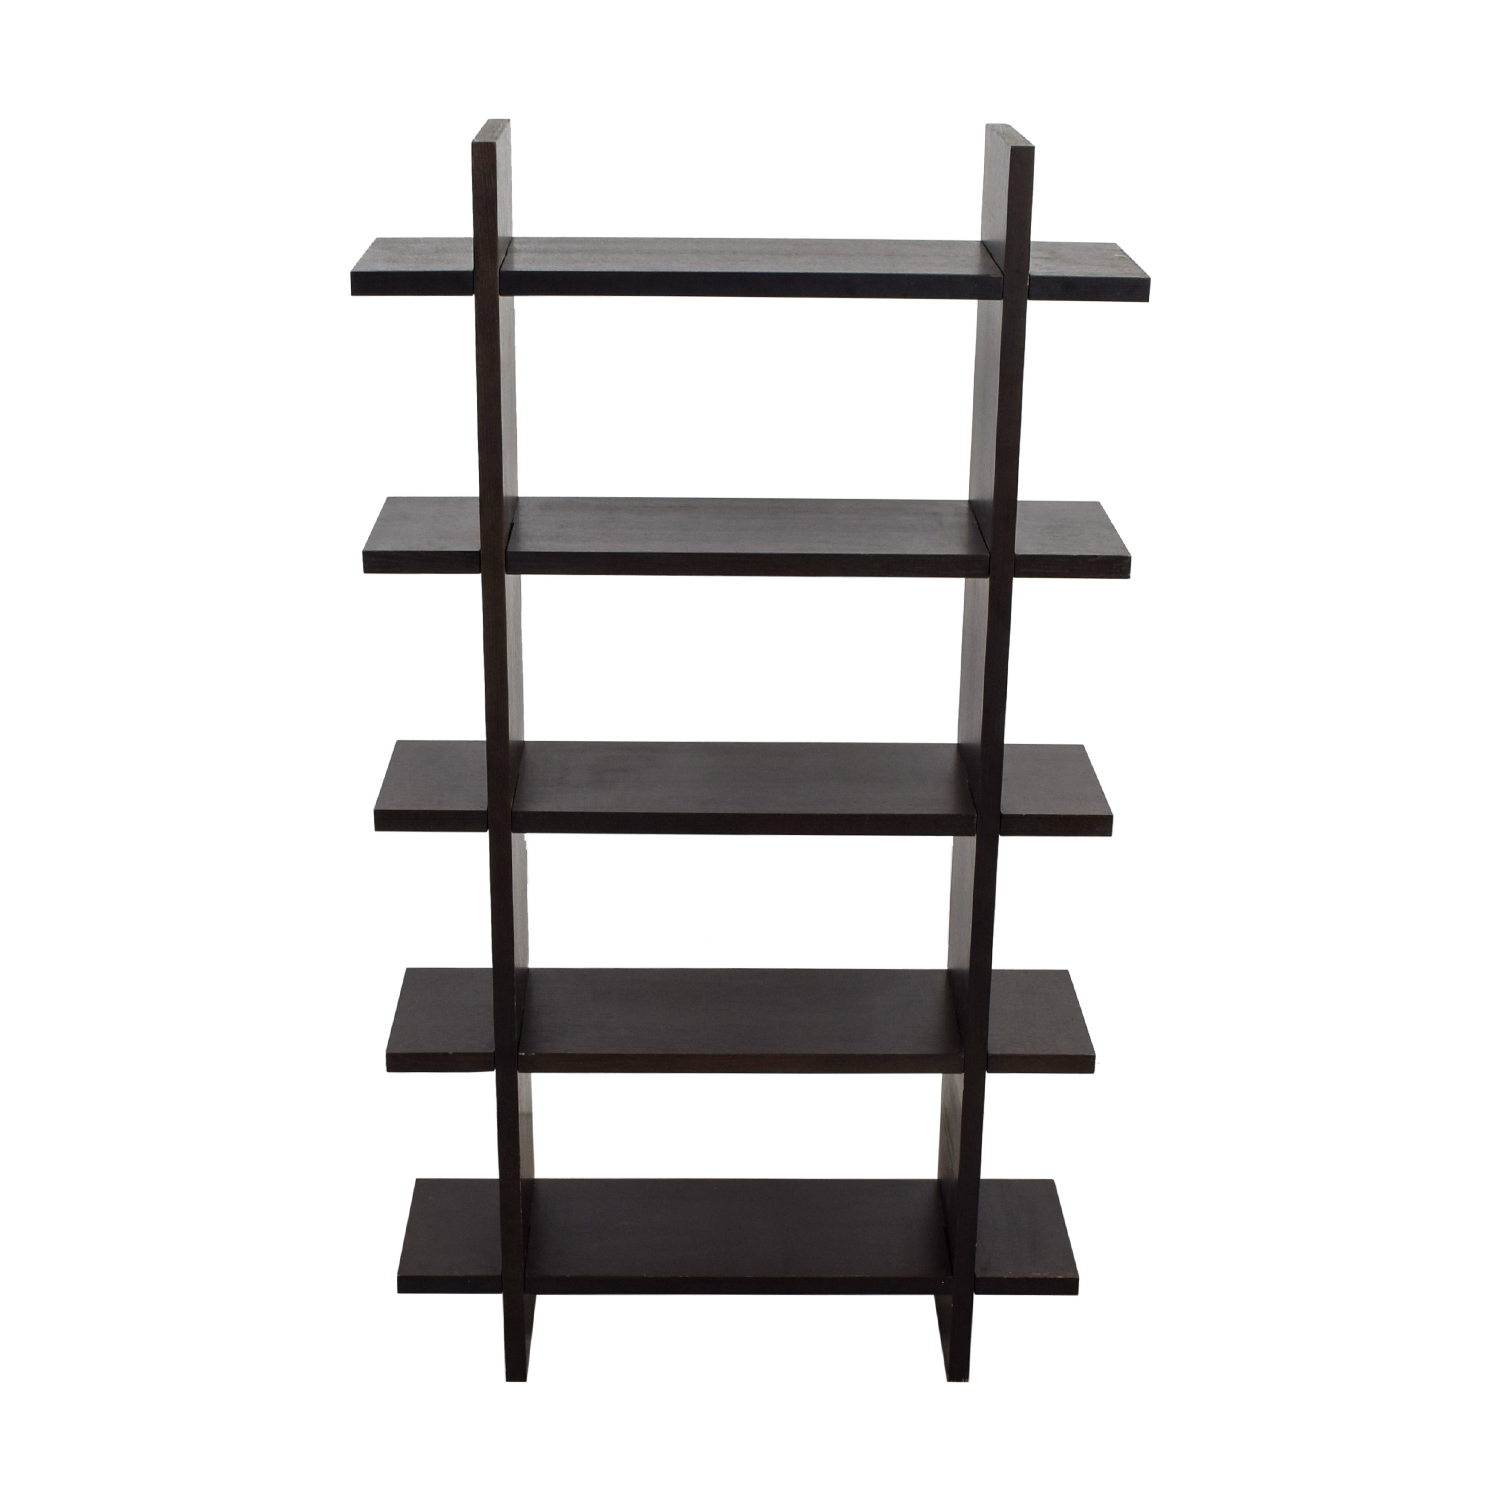 Crate & Barrel Crate & Barrel Black Wood Bookshelf nj